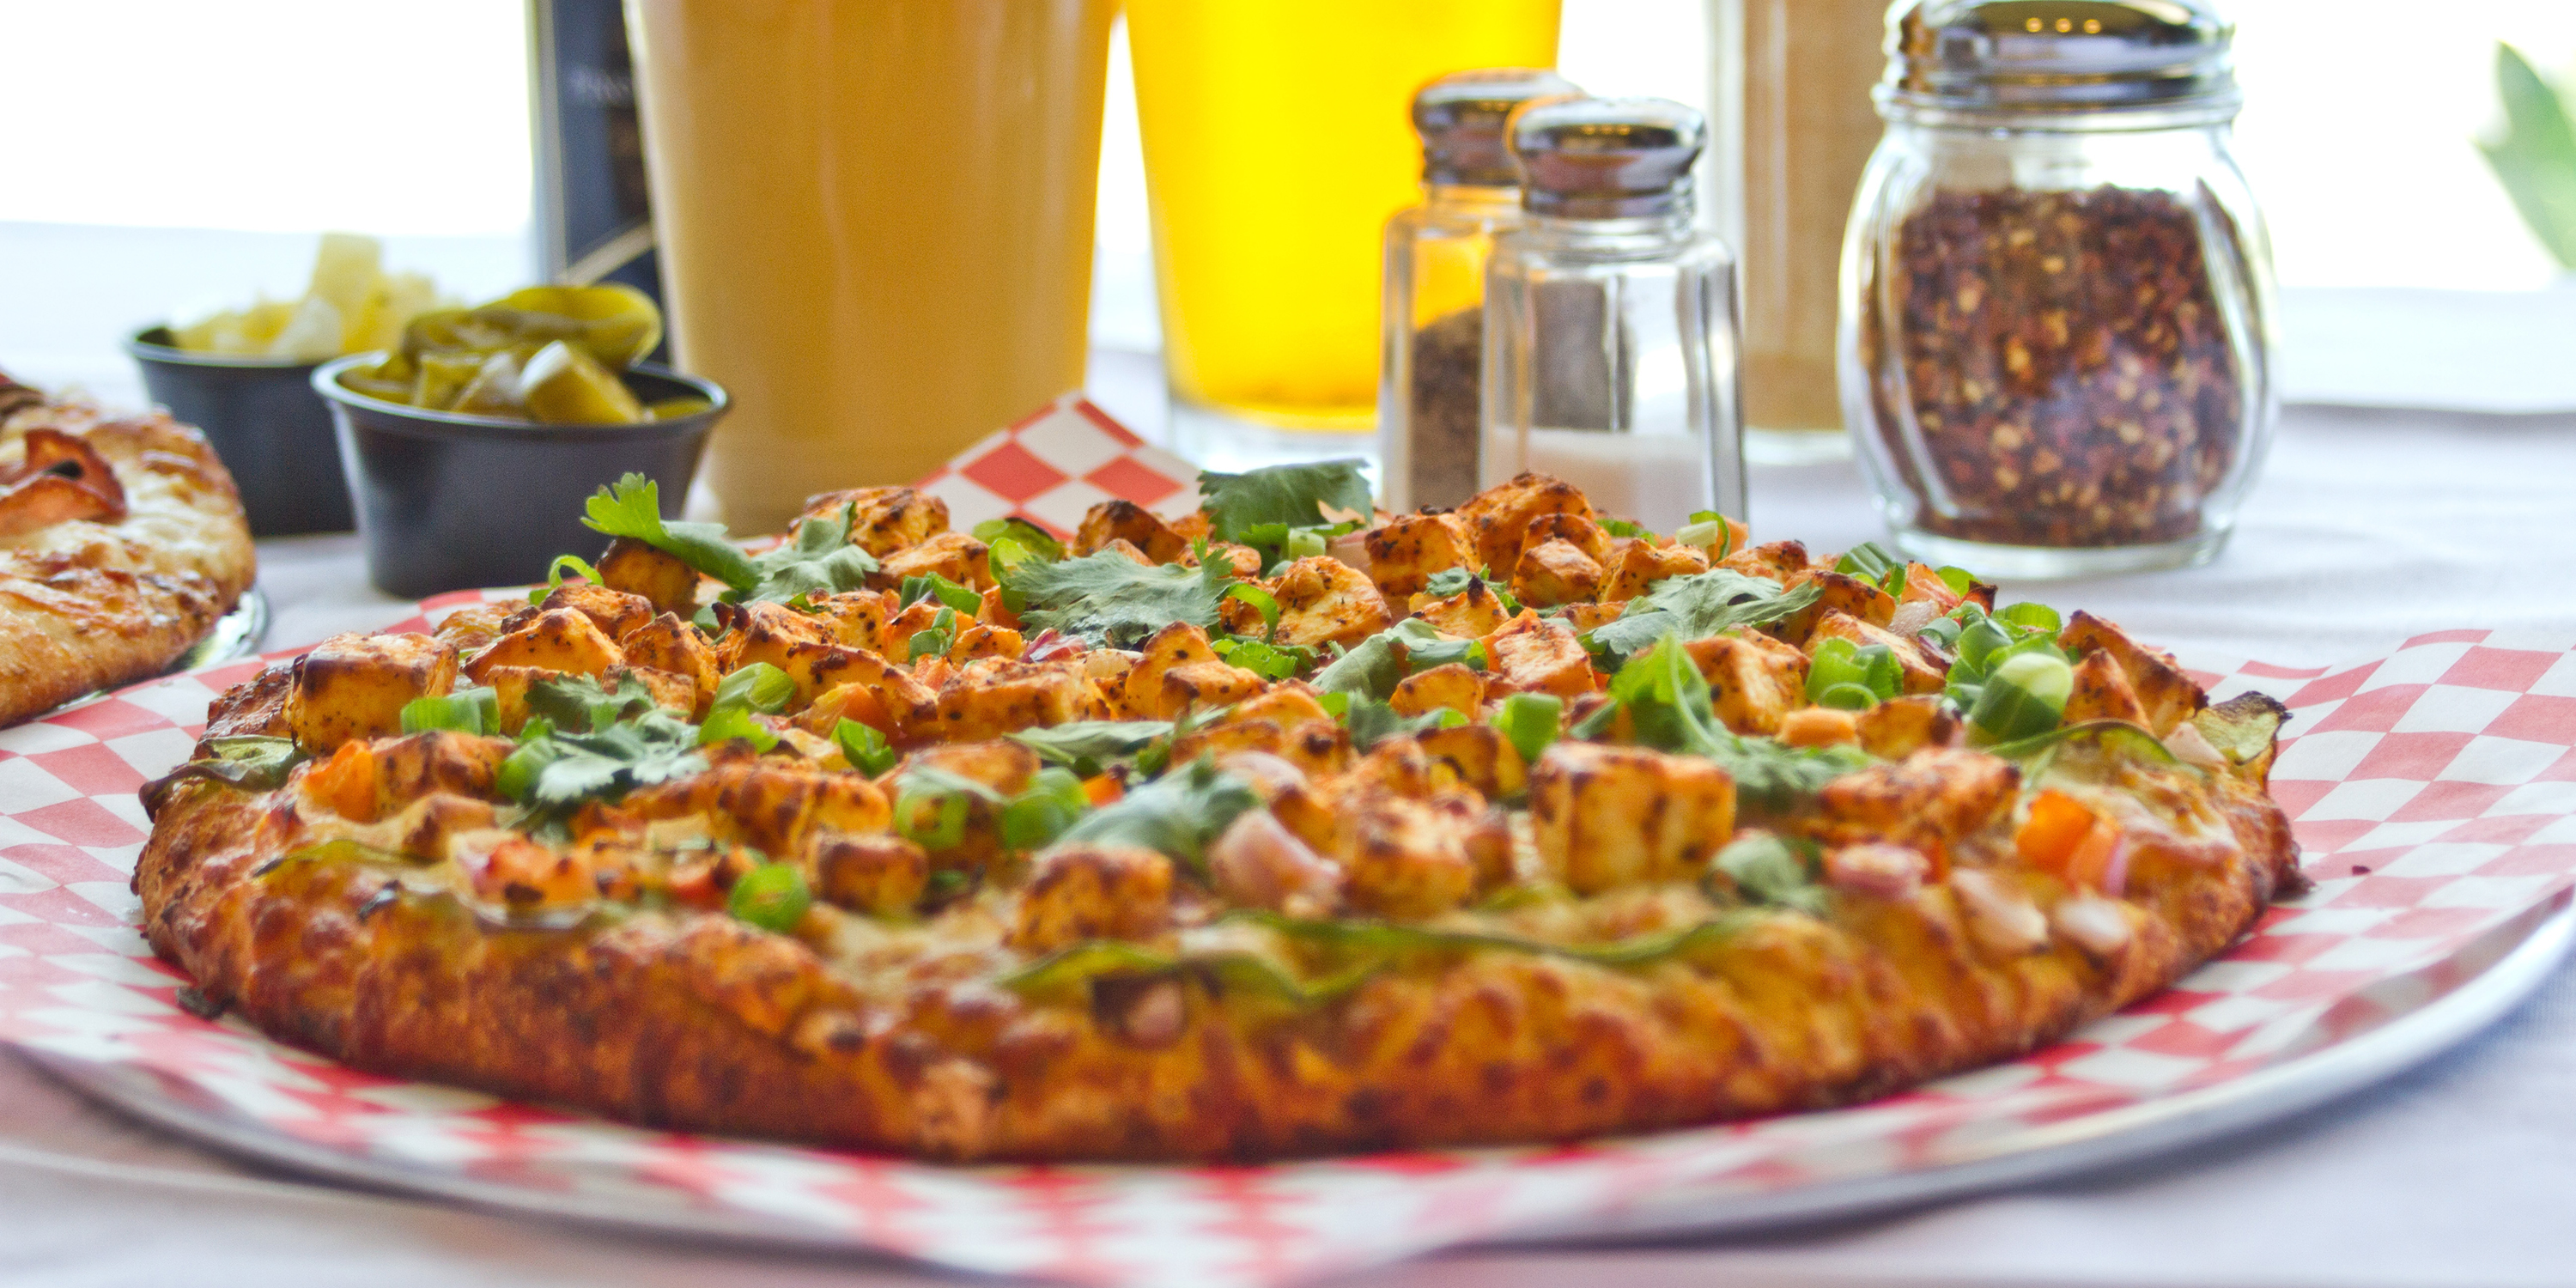 Where To Eat In Fremont Newark And Union City California Via